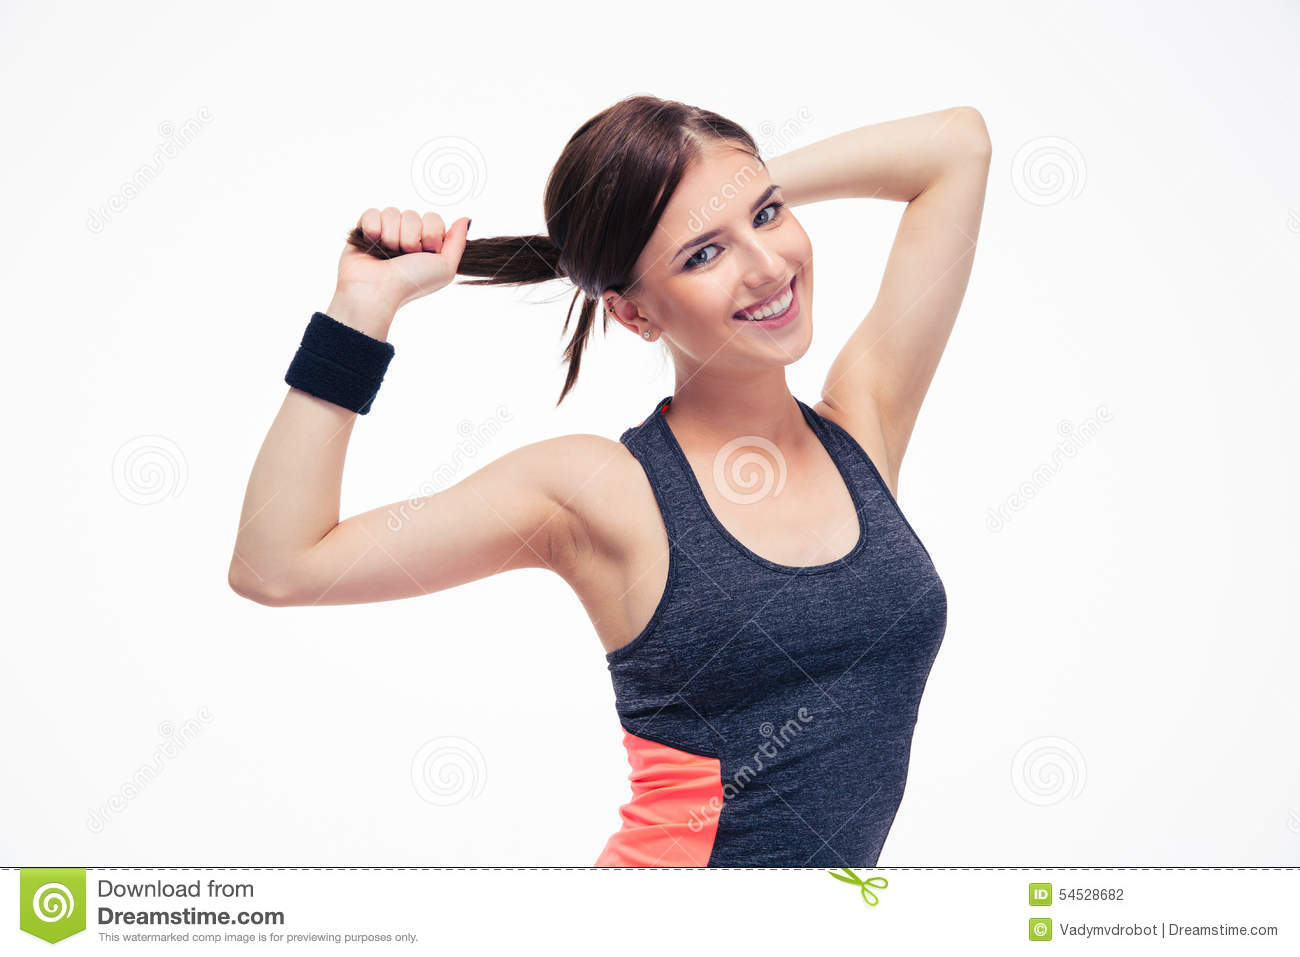 Female only gym business plan